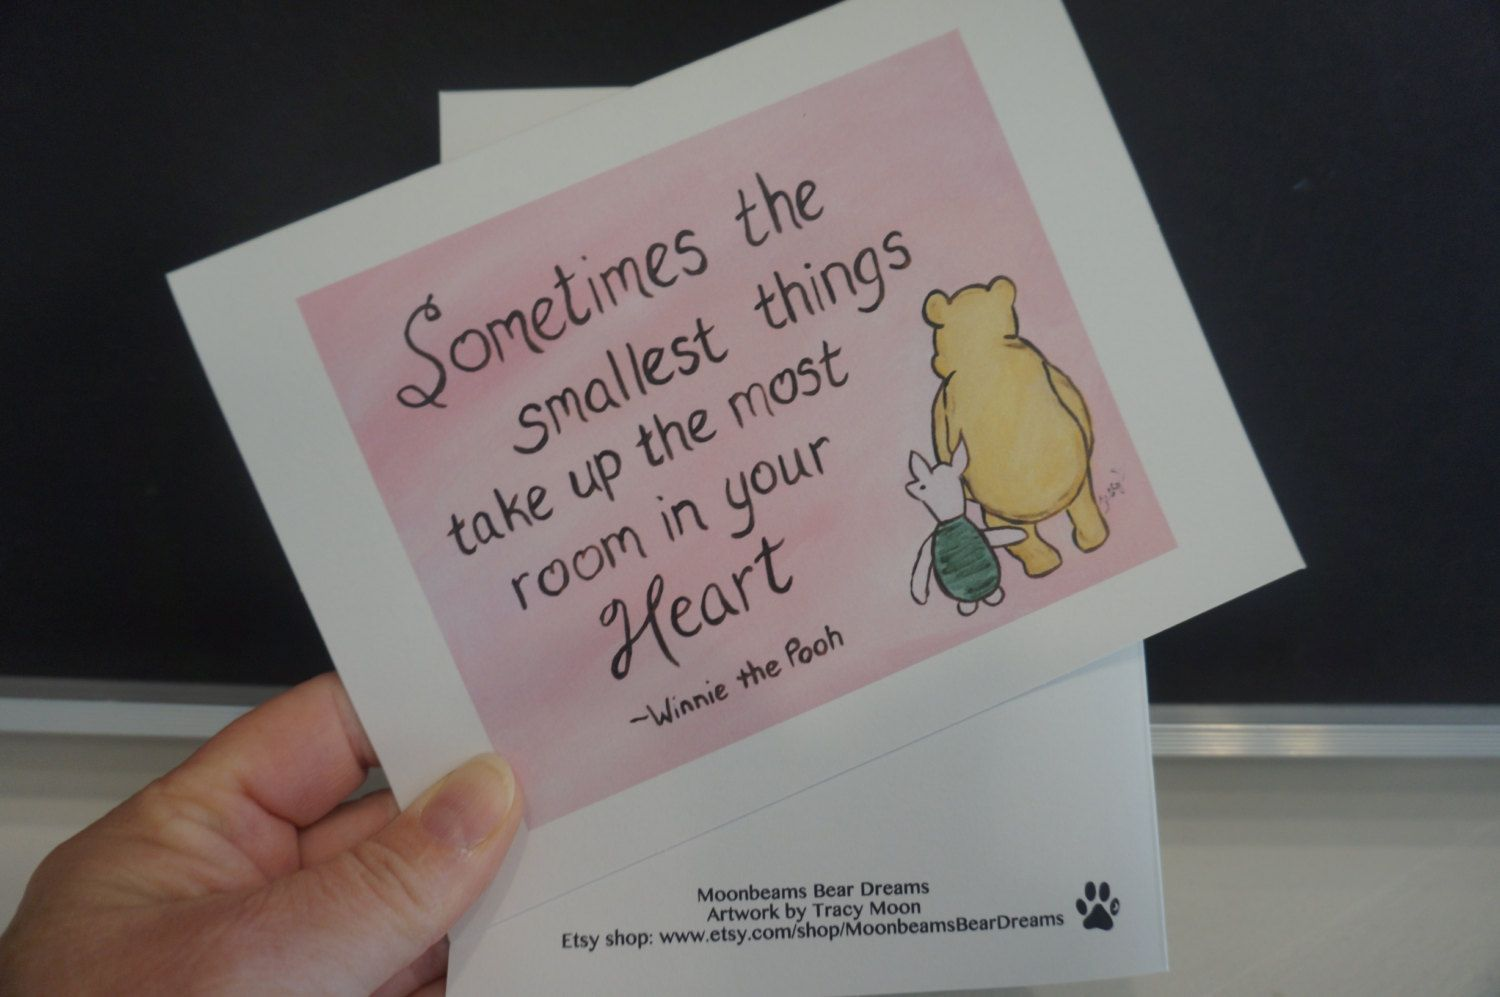 Valentines Card Winnie The Pooh Card Sometimes the smallest things take up the most room in your heart New Baby Congratulations Card